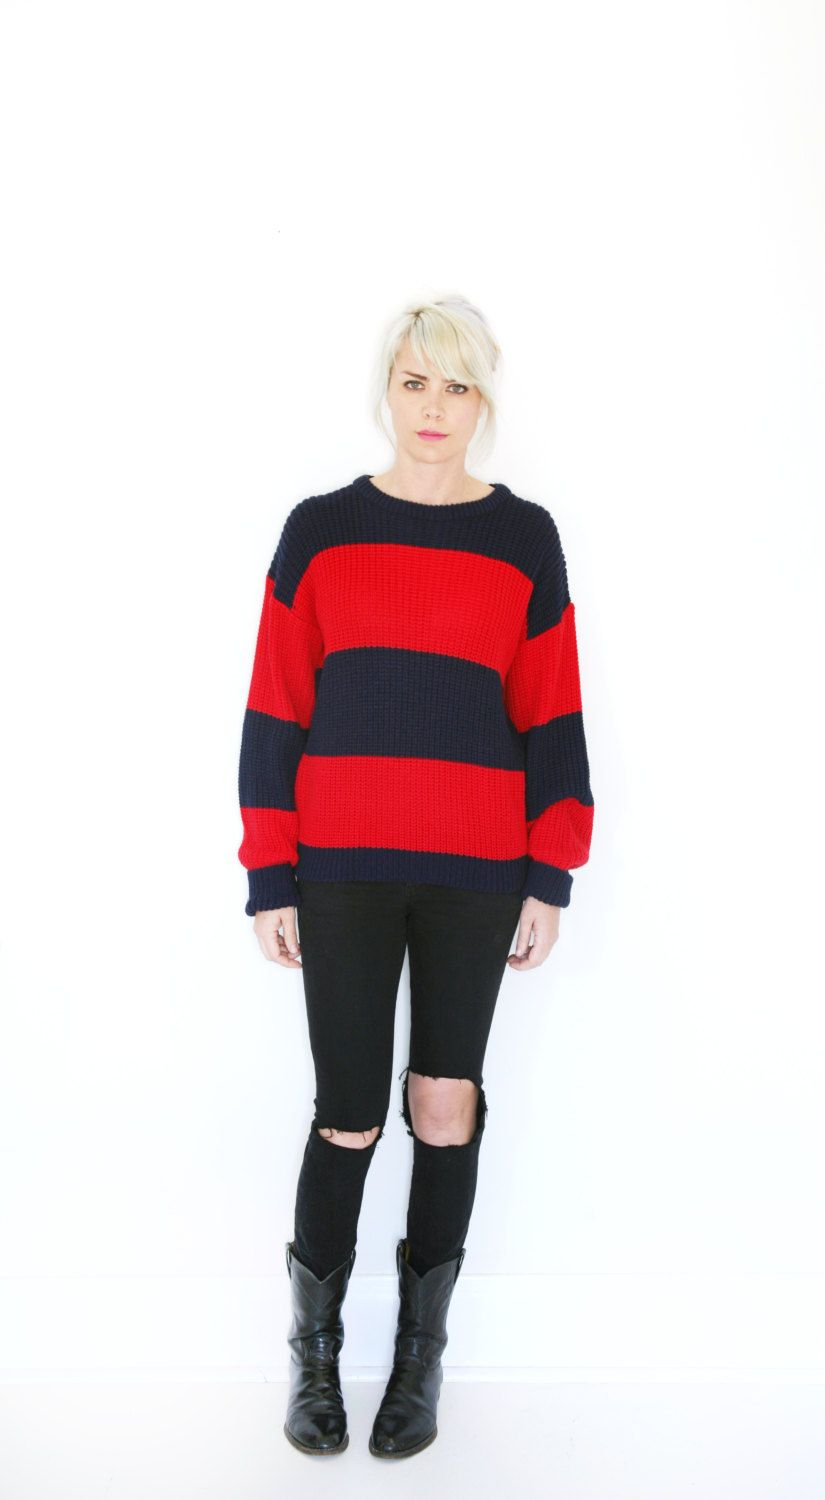 187355285f2 Vintage 90s Kurt Cobain   Freddy Krueger Sweater Red and Blue Stripe Knit  Jumper XL by VintageReBelle on Etsy